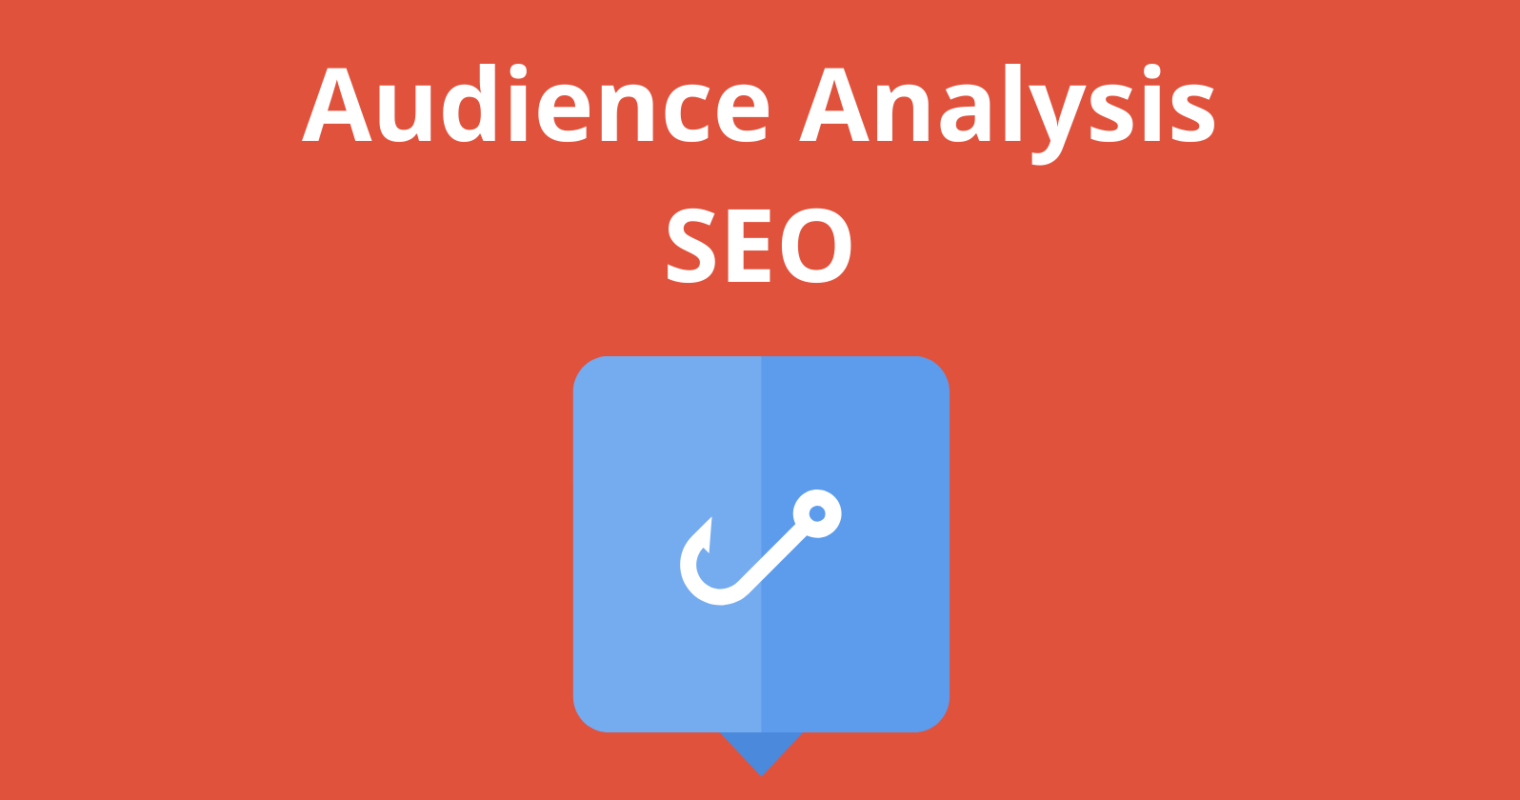 Why an Audience Analysis Is Necessary to SEO